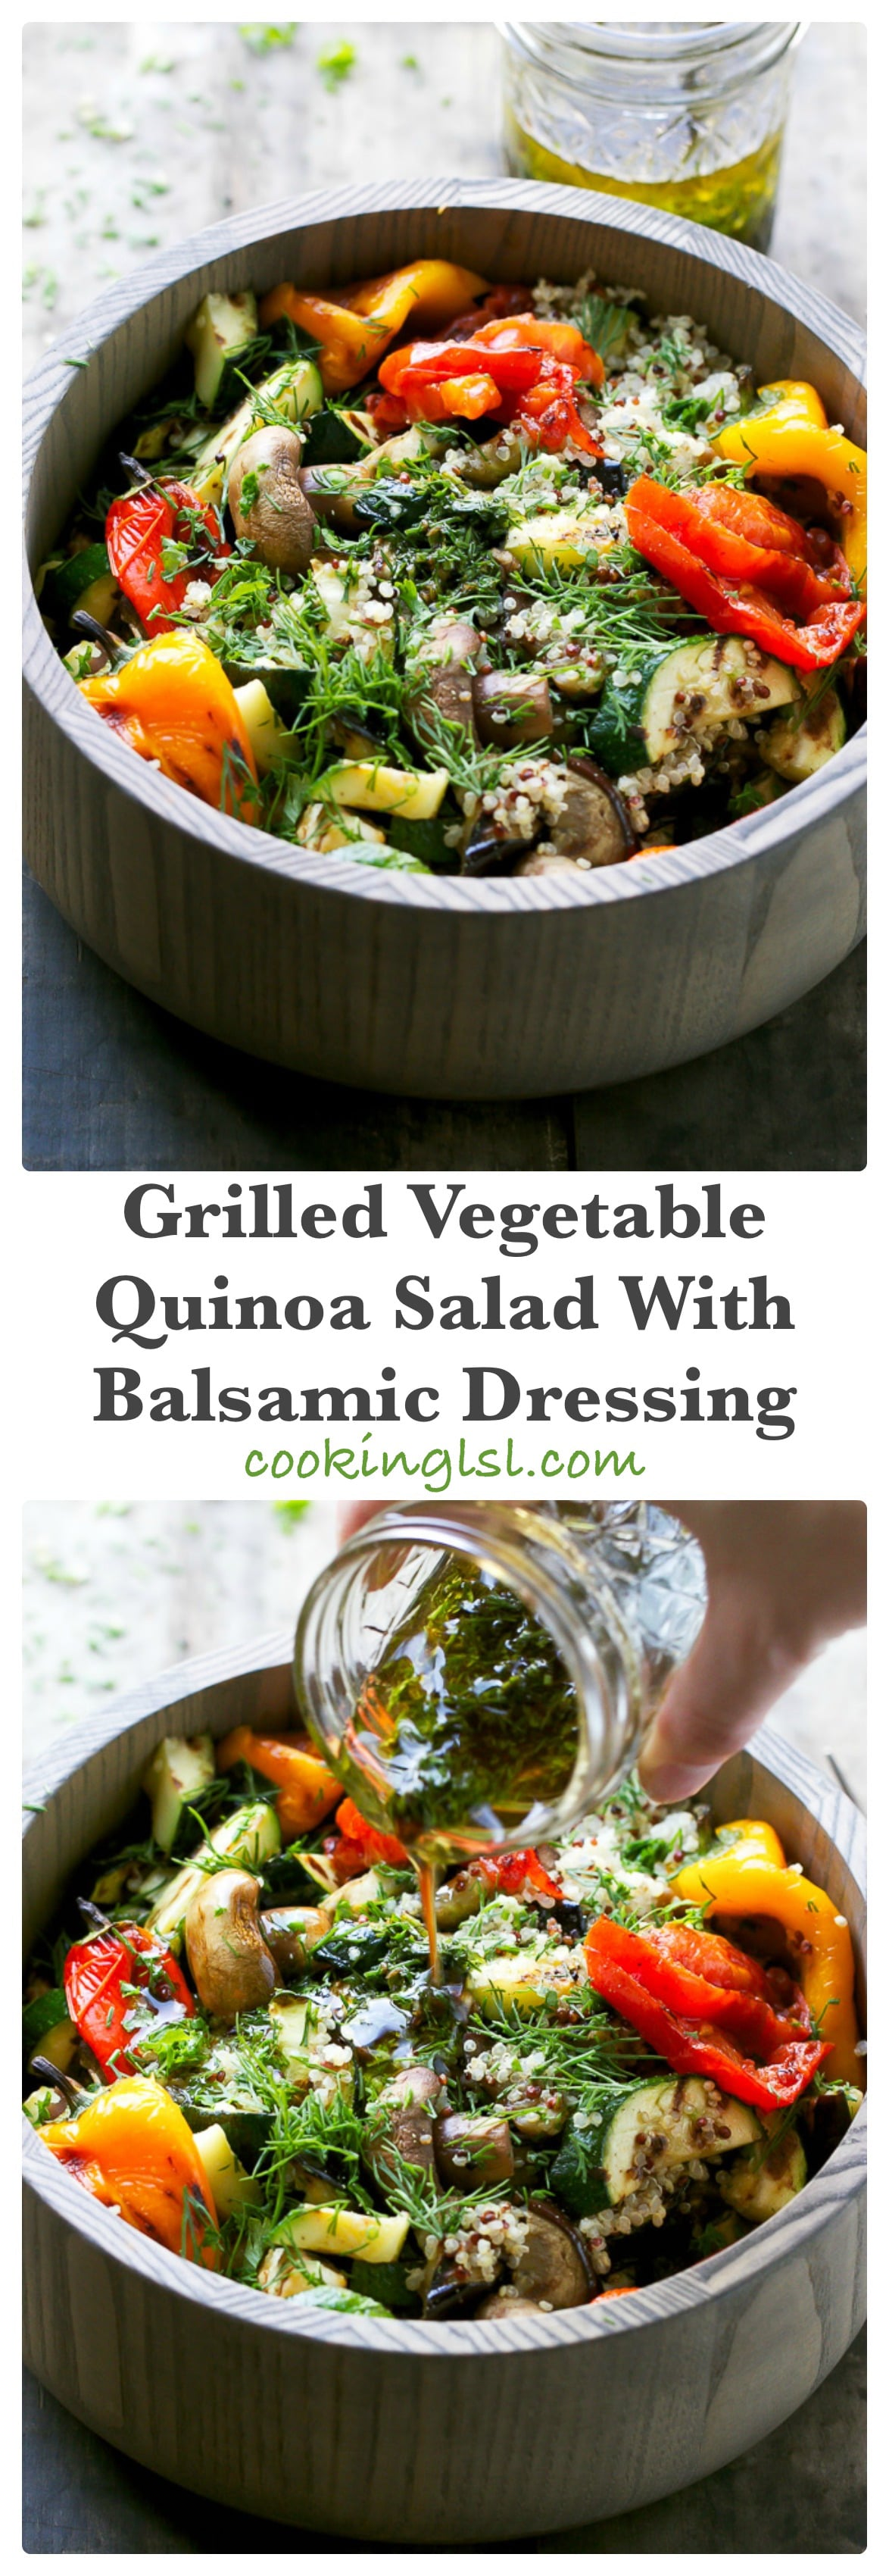 Grilled Vegetable Quinoa Salad With Balsamic Dressing - Cooking LSL